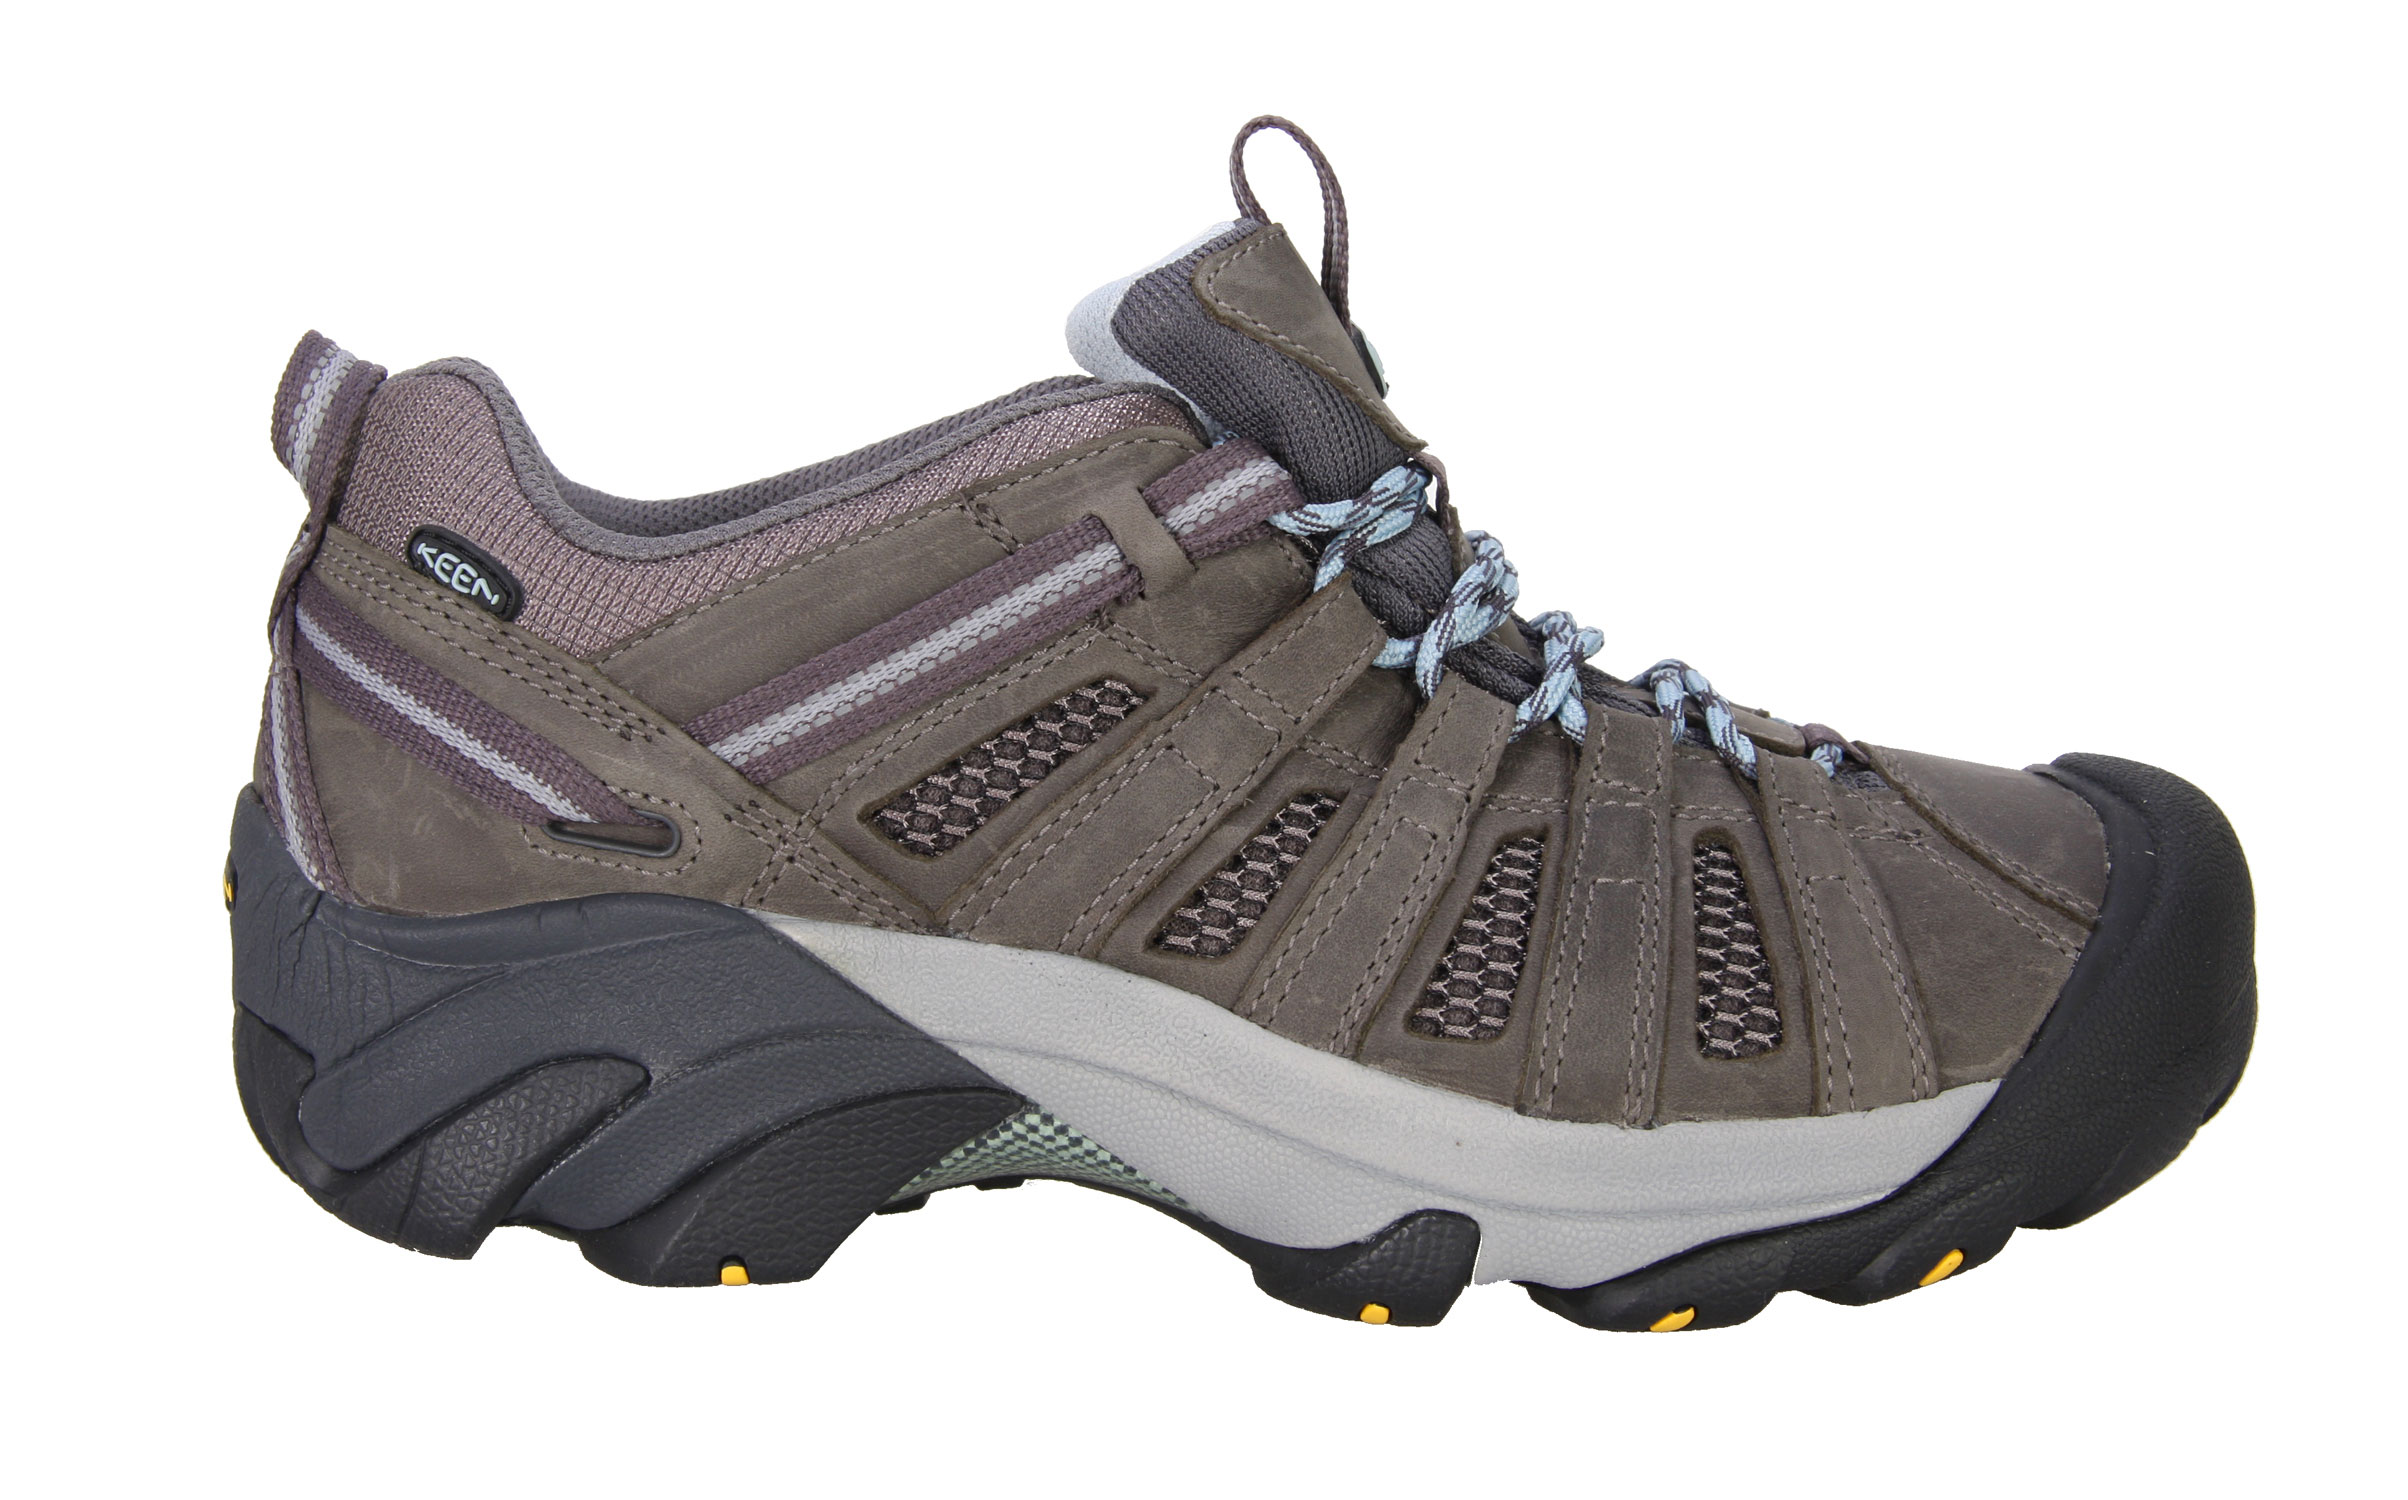 Camp and Hike Keep your cool under pressure with the Voyageur from KEEN. Mesh lining replaces a waterproof barrier for continual airflow. The rugged outsole finds a sure grip on rough terrain with multi-directional lugs. An ESS shank is built in for torsional stability, letting you keep your mind on the task at hand.Key Features of The Keen Voyageur Low Hiking Shoes: 4mm multi-directional lugs Dual Density Compression Molded EVA Midsole Non-marking rubber outsole Patented toe protection Removable metatomical Footbed S3 Heel support structure Torsion stability ESS shank S3-Shock, suspension, stability Metatomical Footbed Design Keen Protect - KEEN Patented Toe Protection where the shoe outsoles wrap up and over the toes for ultimate protection Weight: 15.06oz / 427 grams Fit Tip: We find this style runs about a 1/2 size small Lining: Moisture Wicking Textile Upper: Leather, Webbing, Mesh Rubber: Non-marking rubber outsole Activities: Hiking Type: Shoes, Lace Up - $64.95